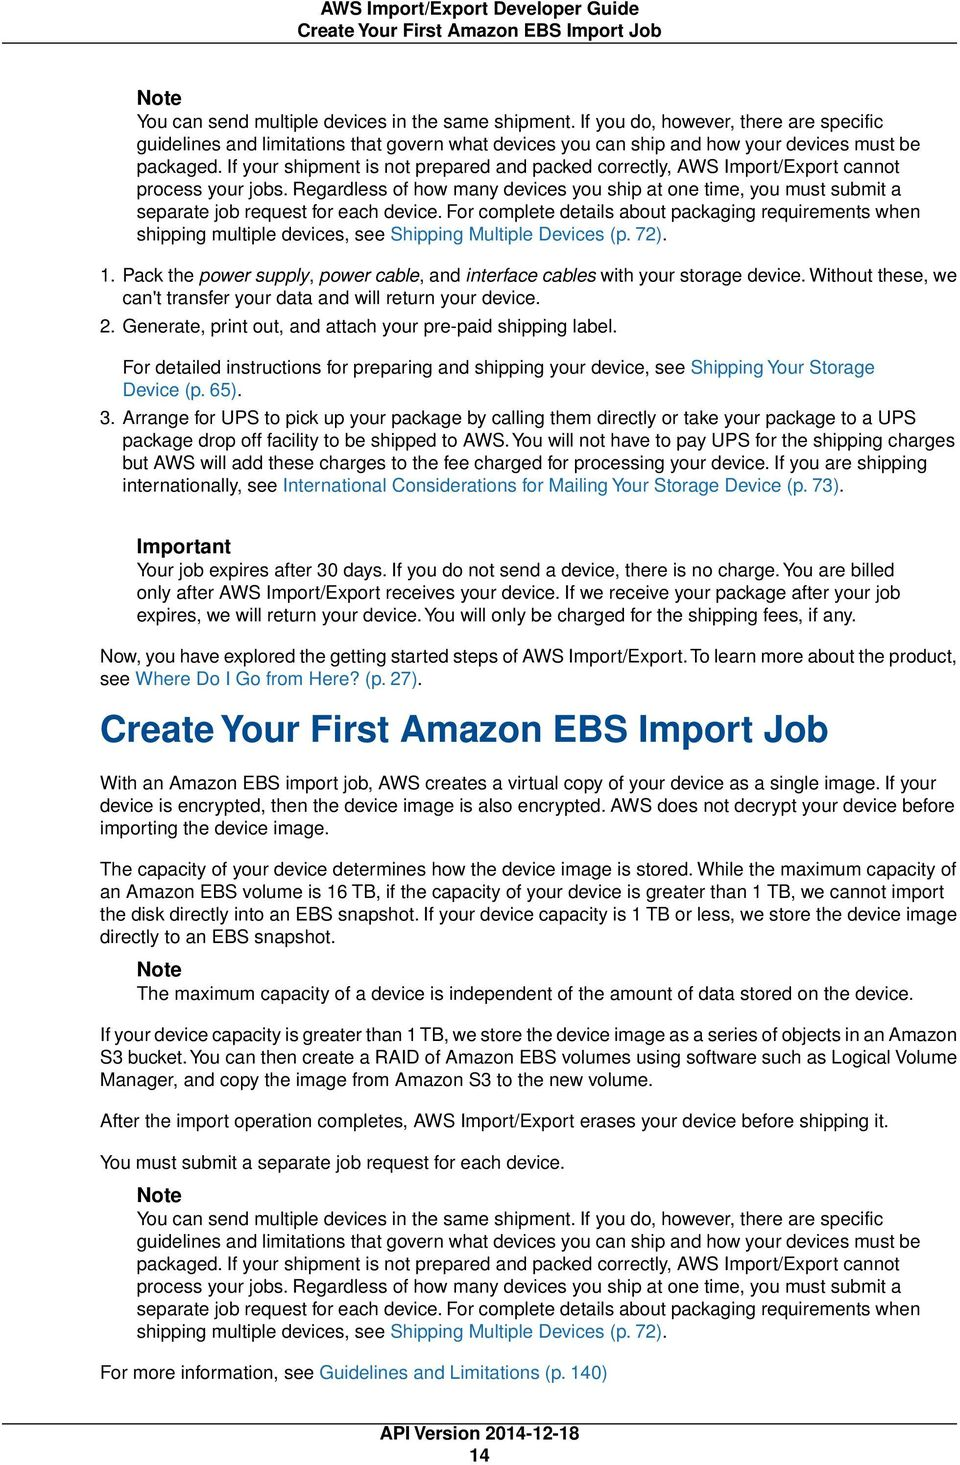 If your shipment is not prepared and packed correctly, AWS Import/Export cannot process your jobs.